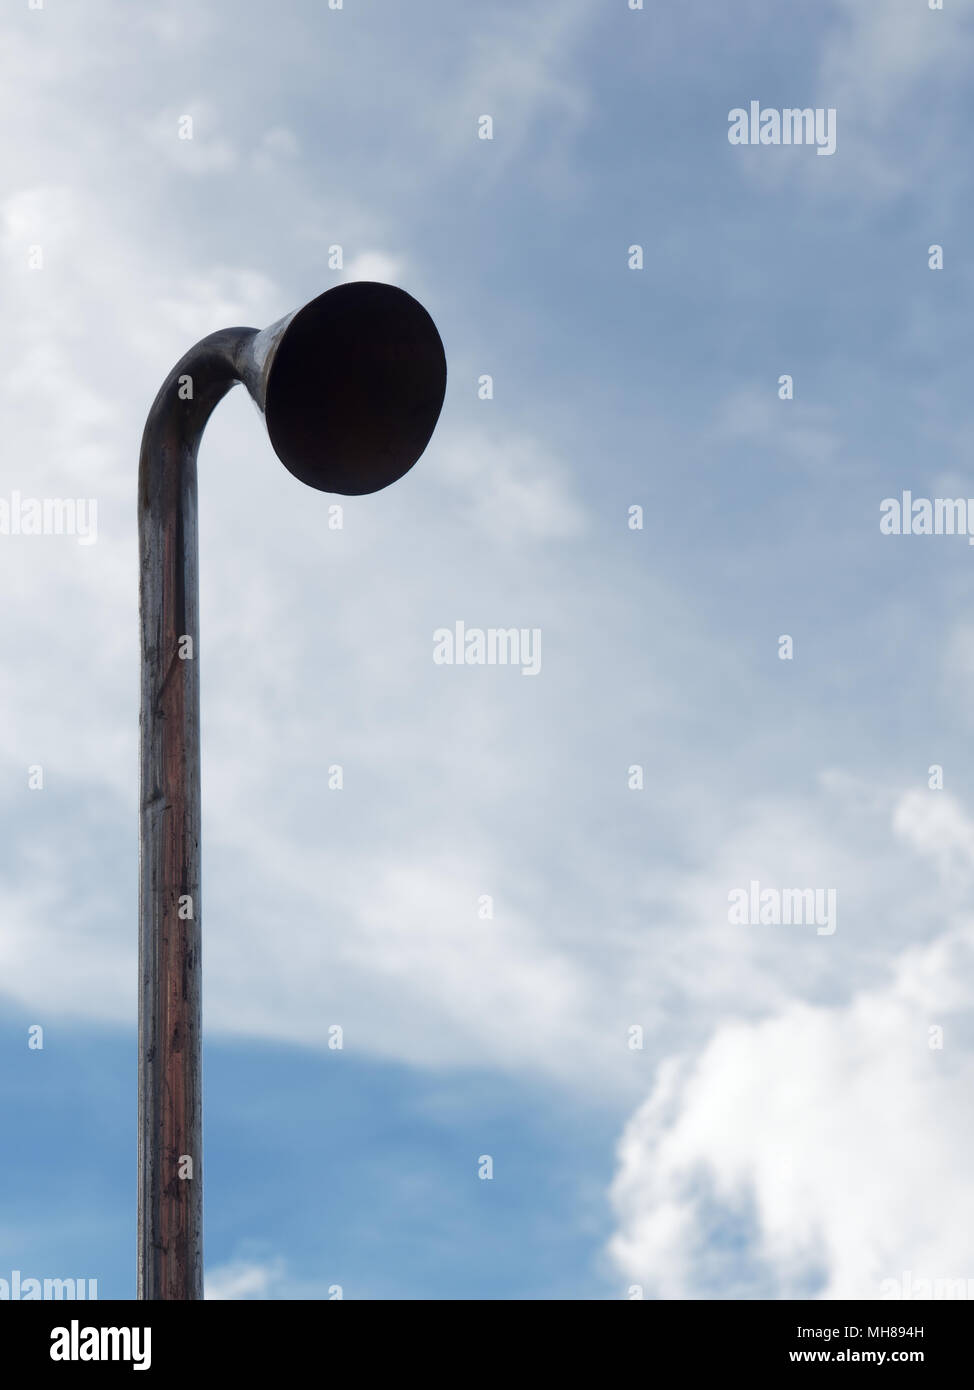 Induction or suction pipe with head for testing air and noise pollution over bright blue sky background sucking cloud into tube with concepts of business, environment, suction, industry and pollution - Stock Image